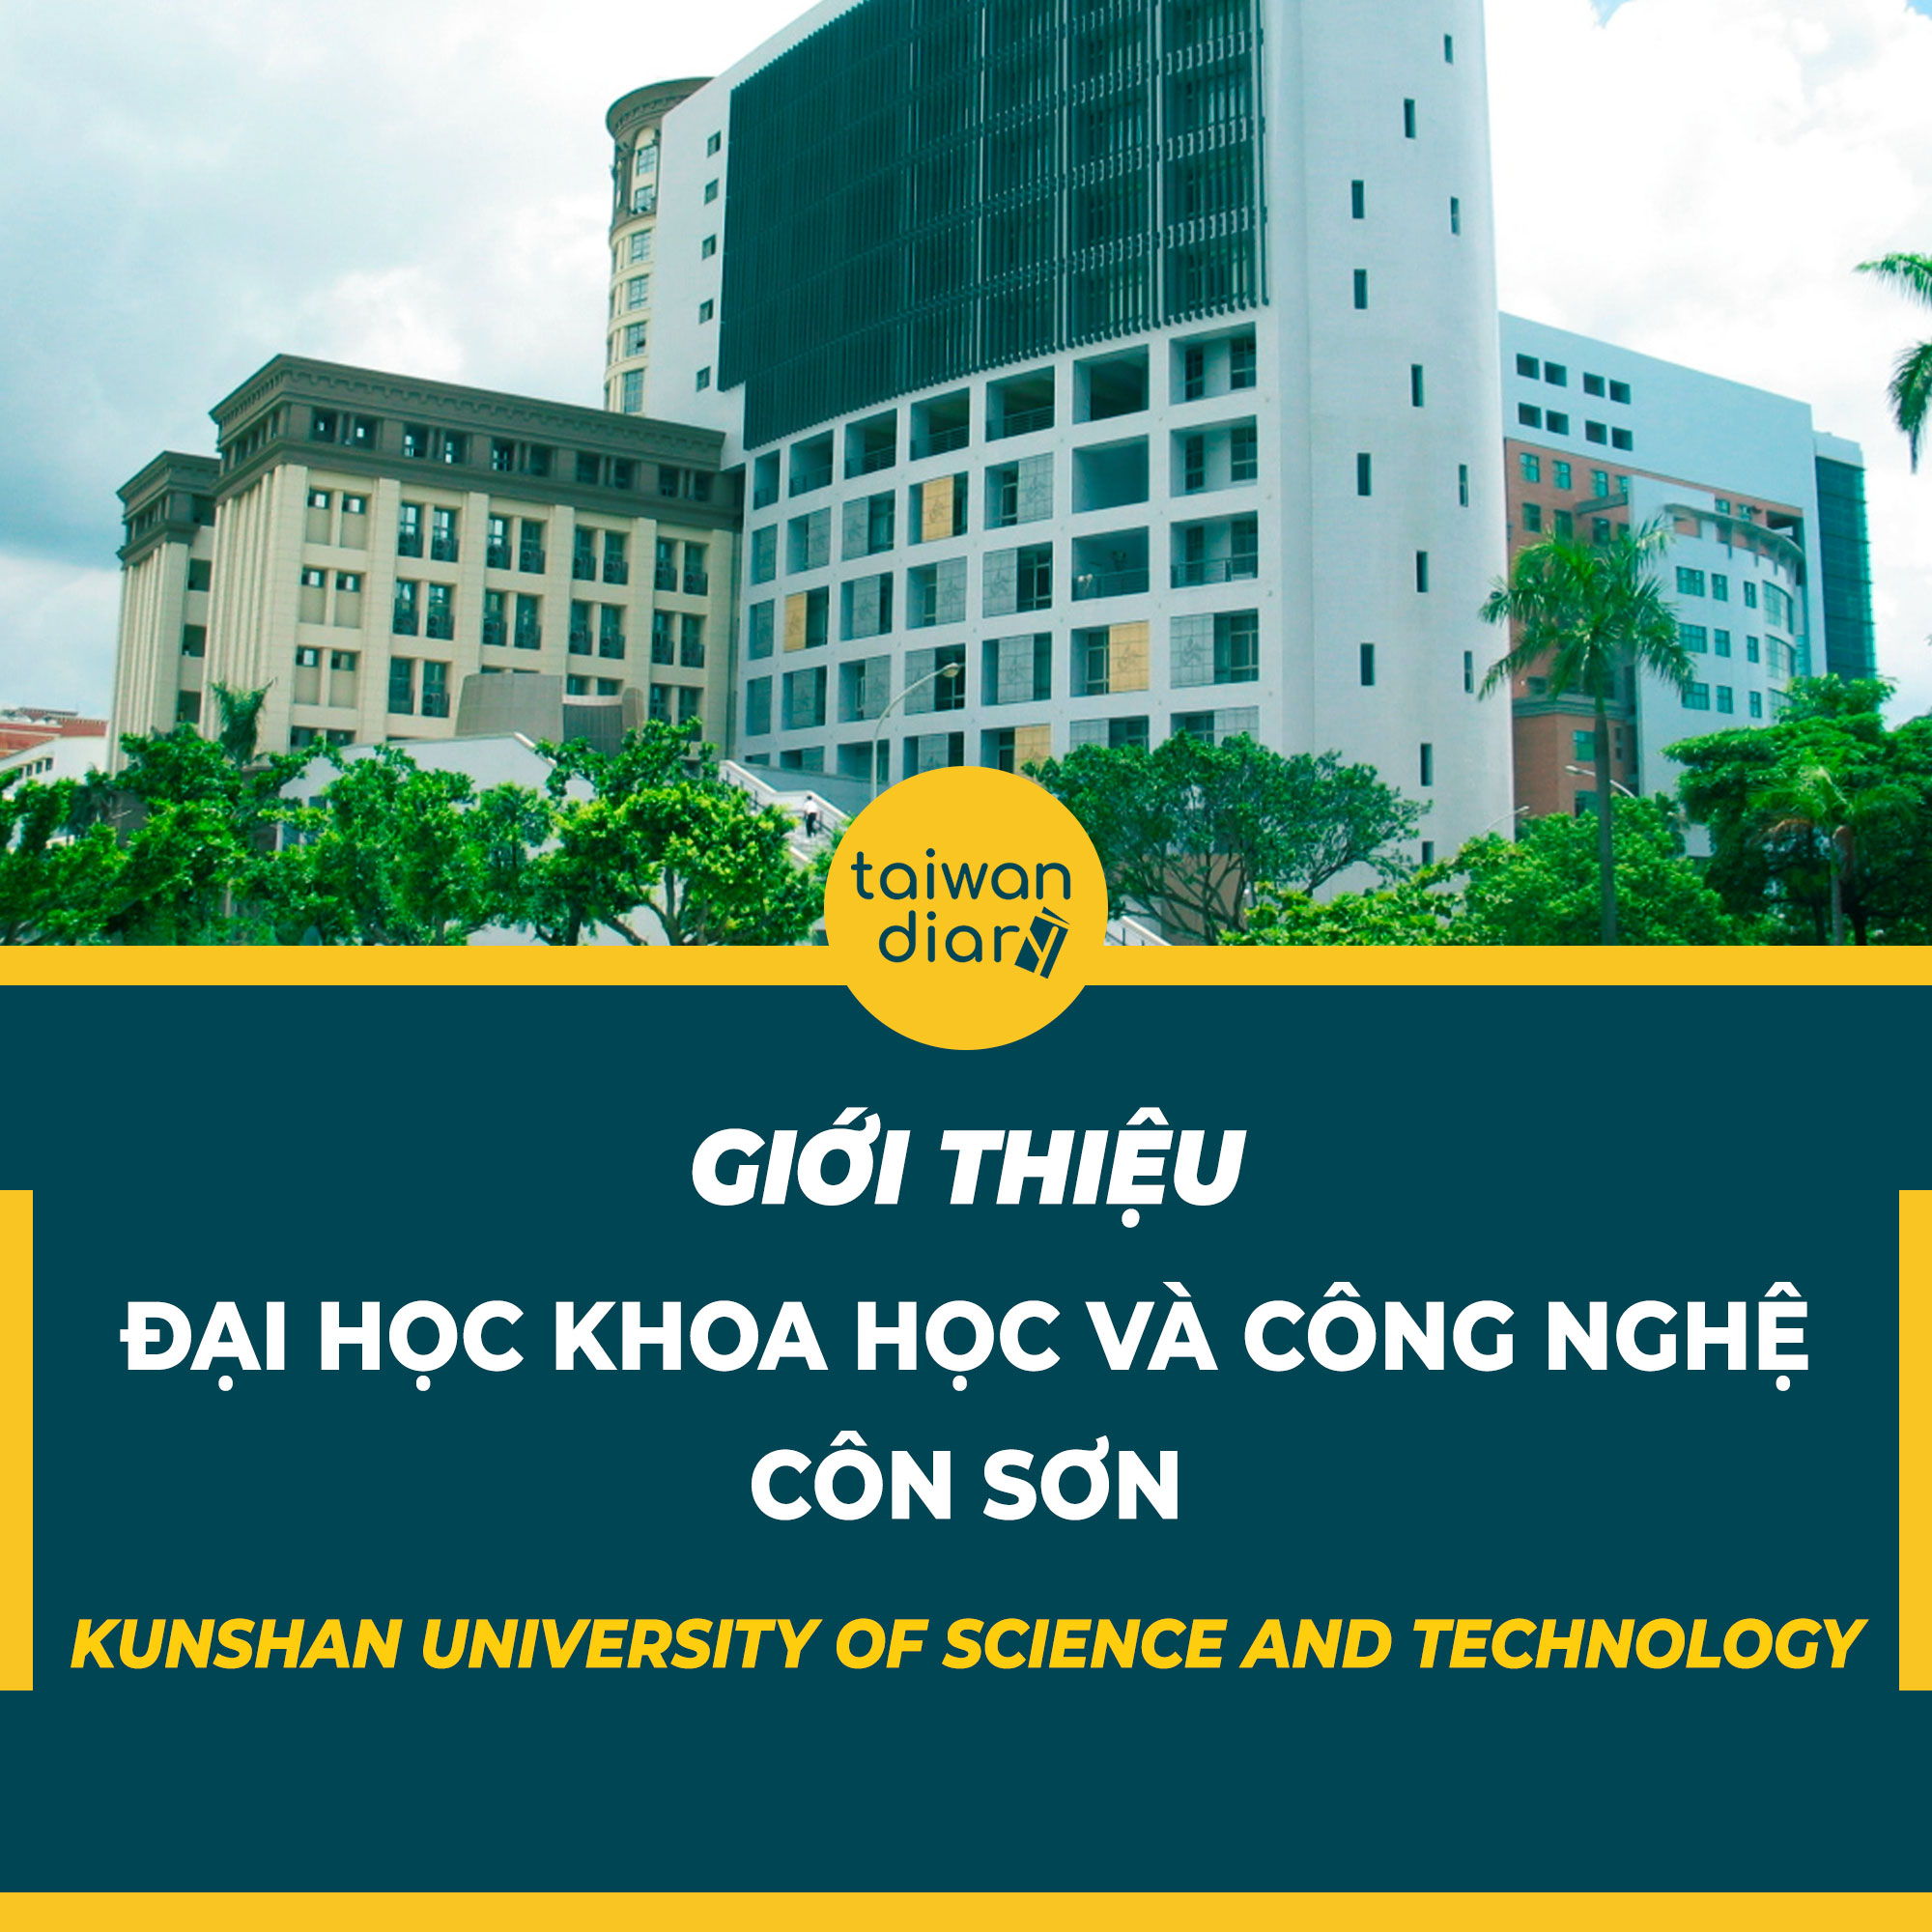 Kunshan University of Science and Technology